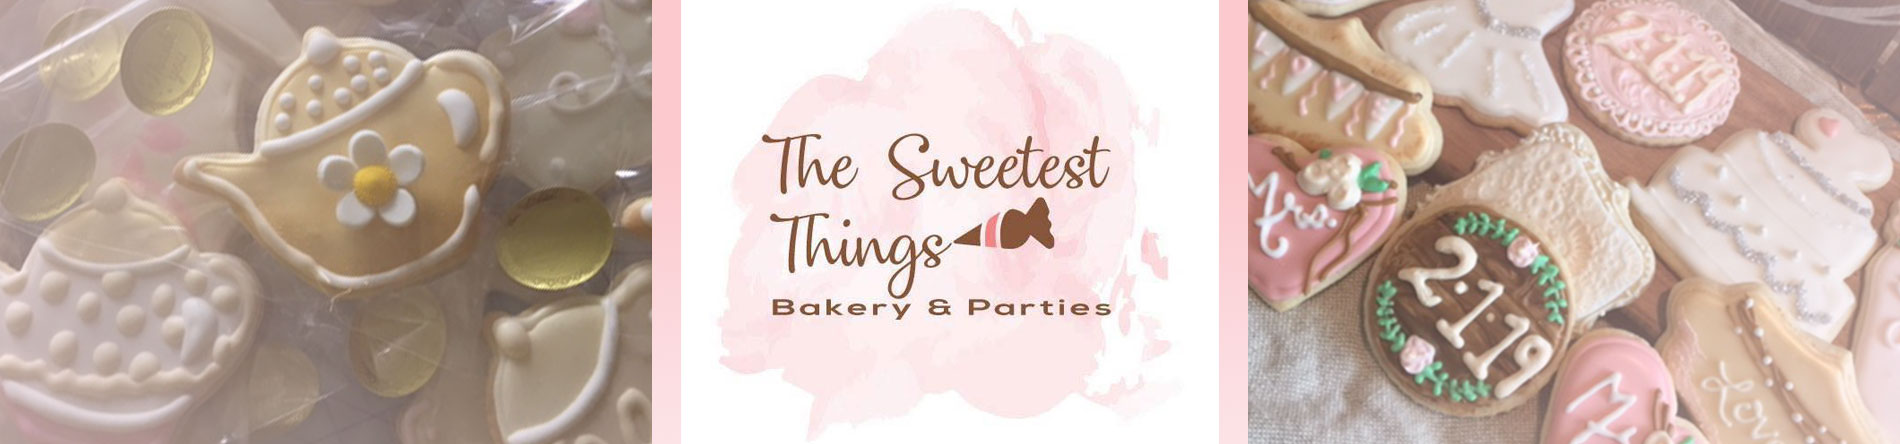 The Sweetest Things Bakery & Parties is a Bakery in Corona, CA